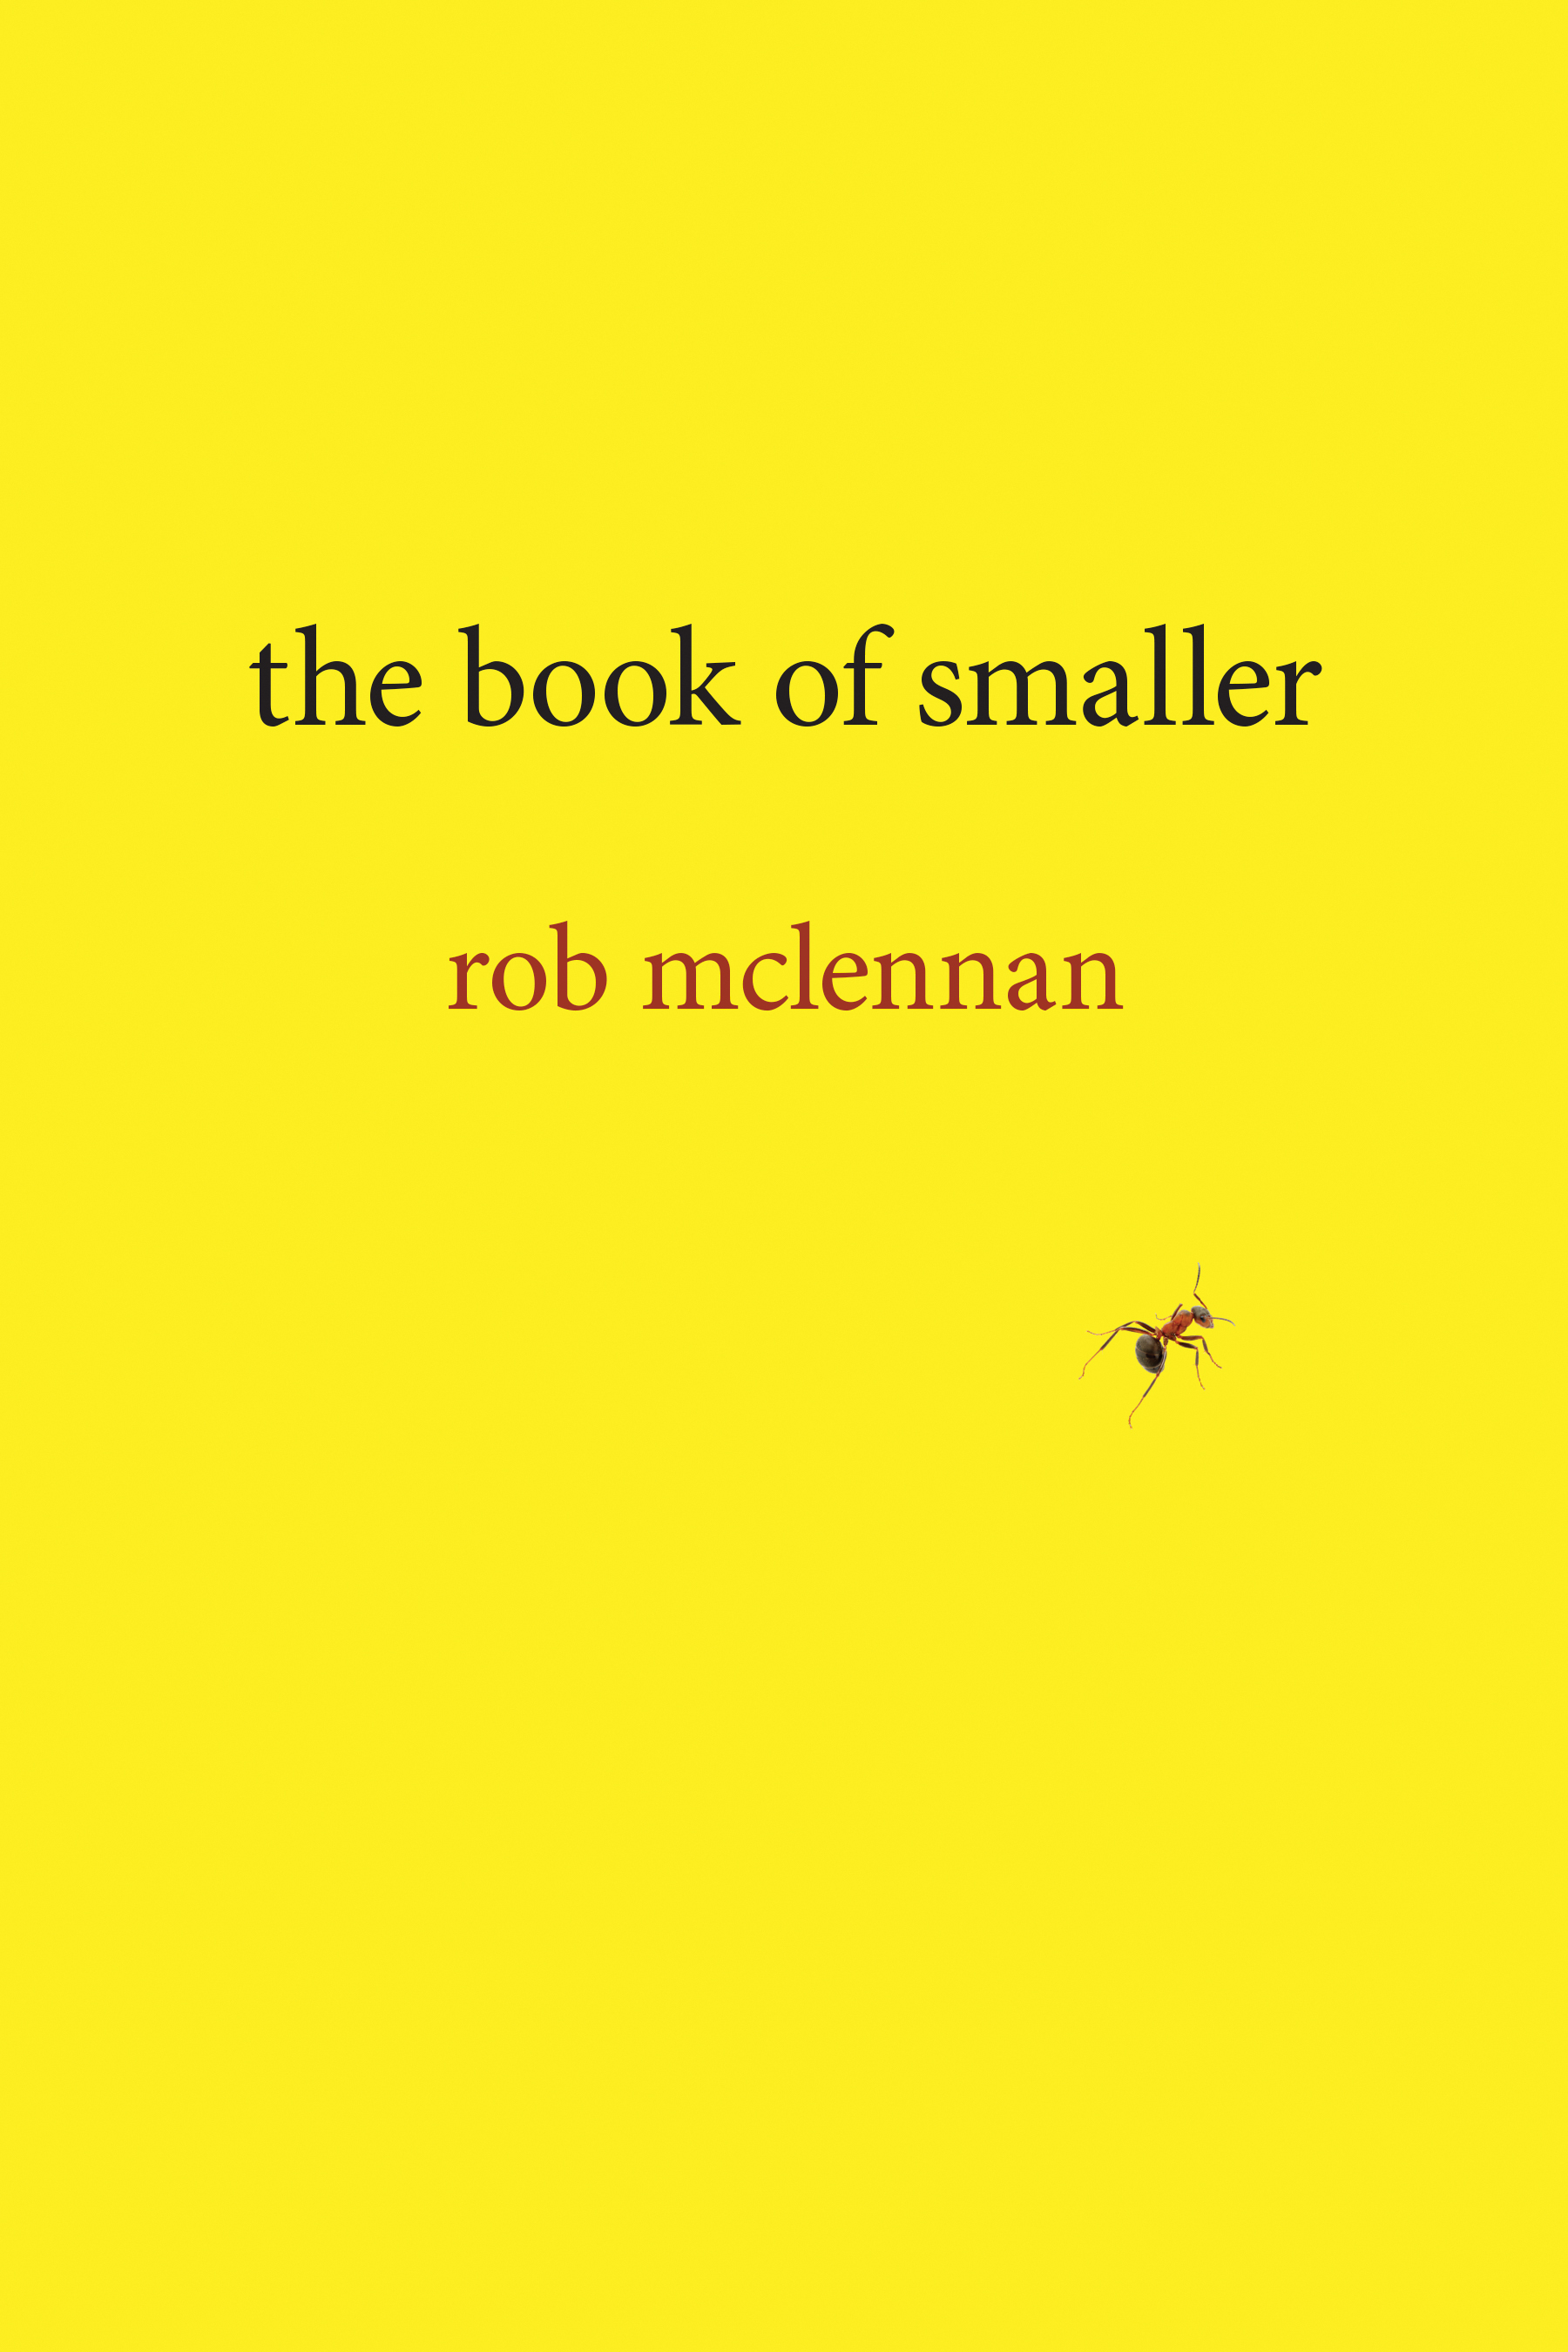 Book cover image for: book of smaller